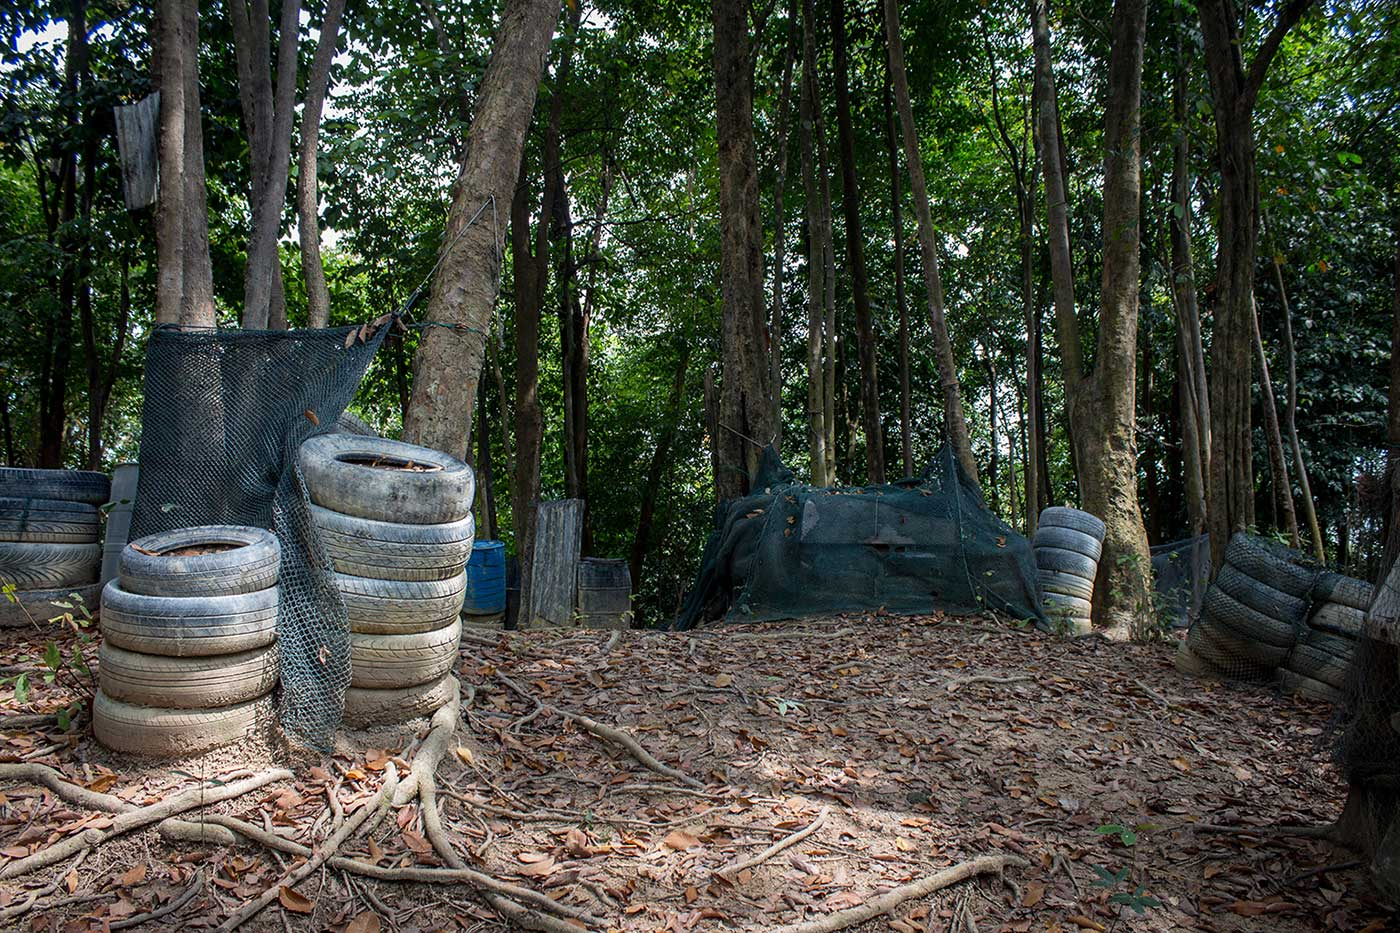 Paintball arena at the Penang War Museum, Malaysia.